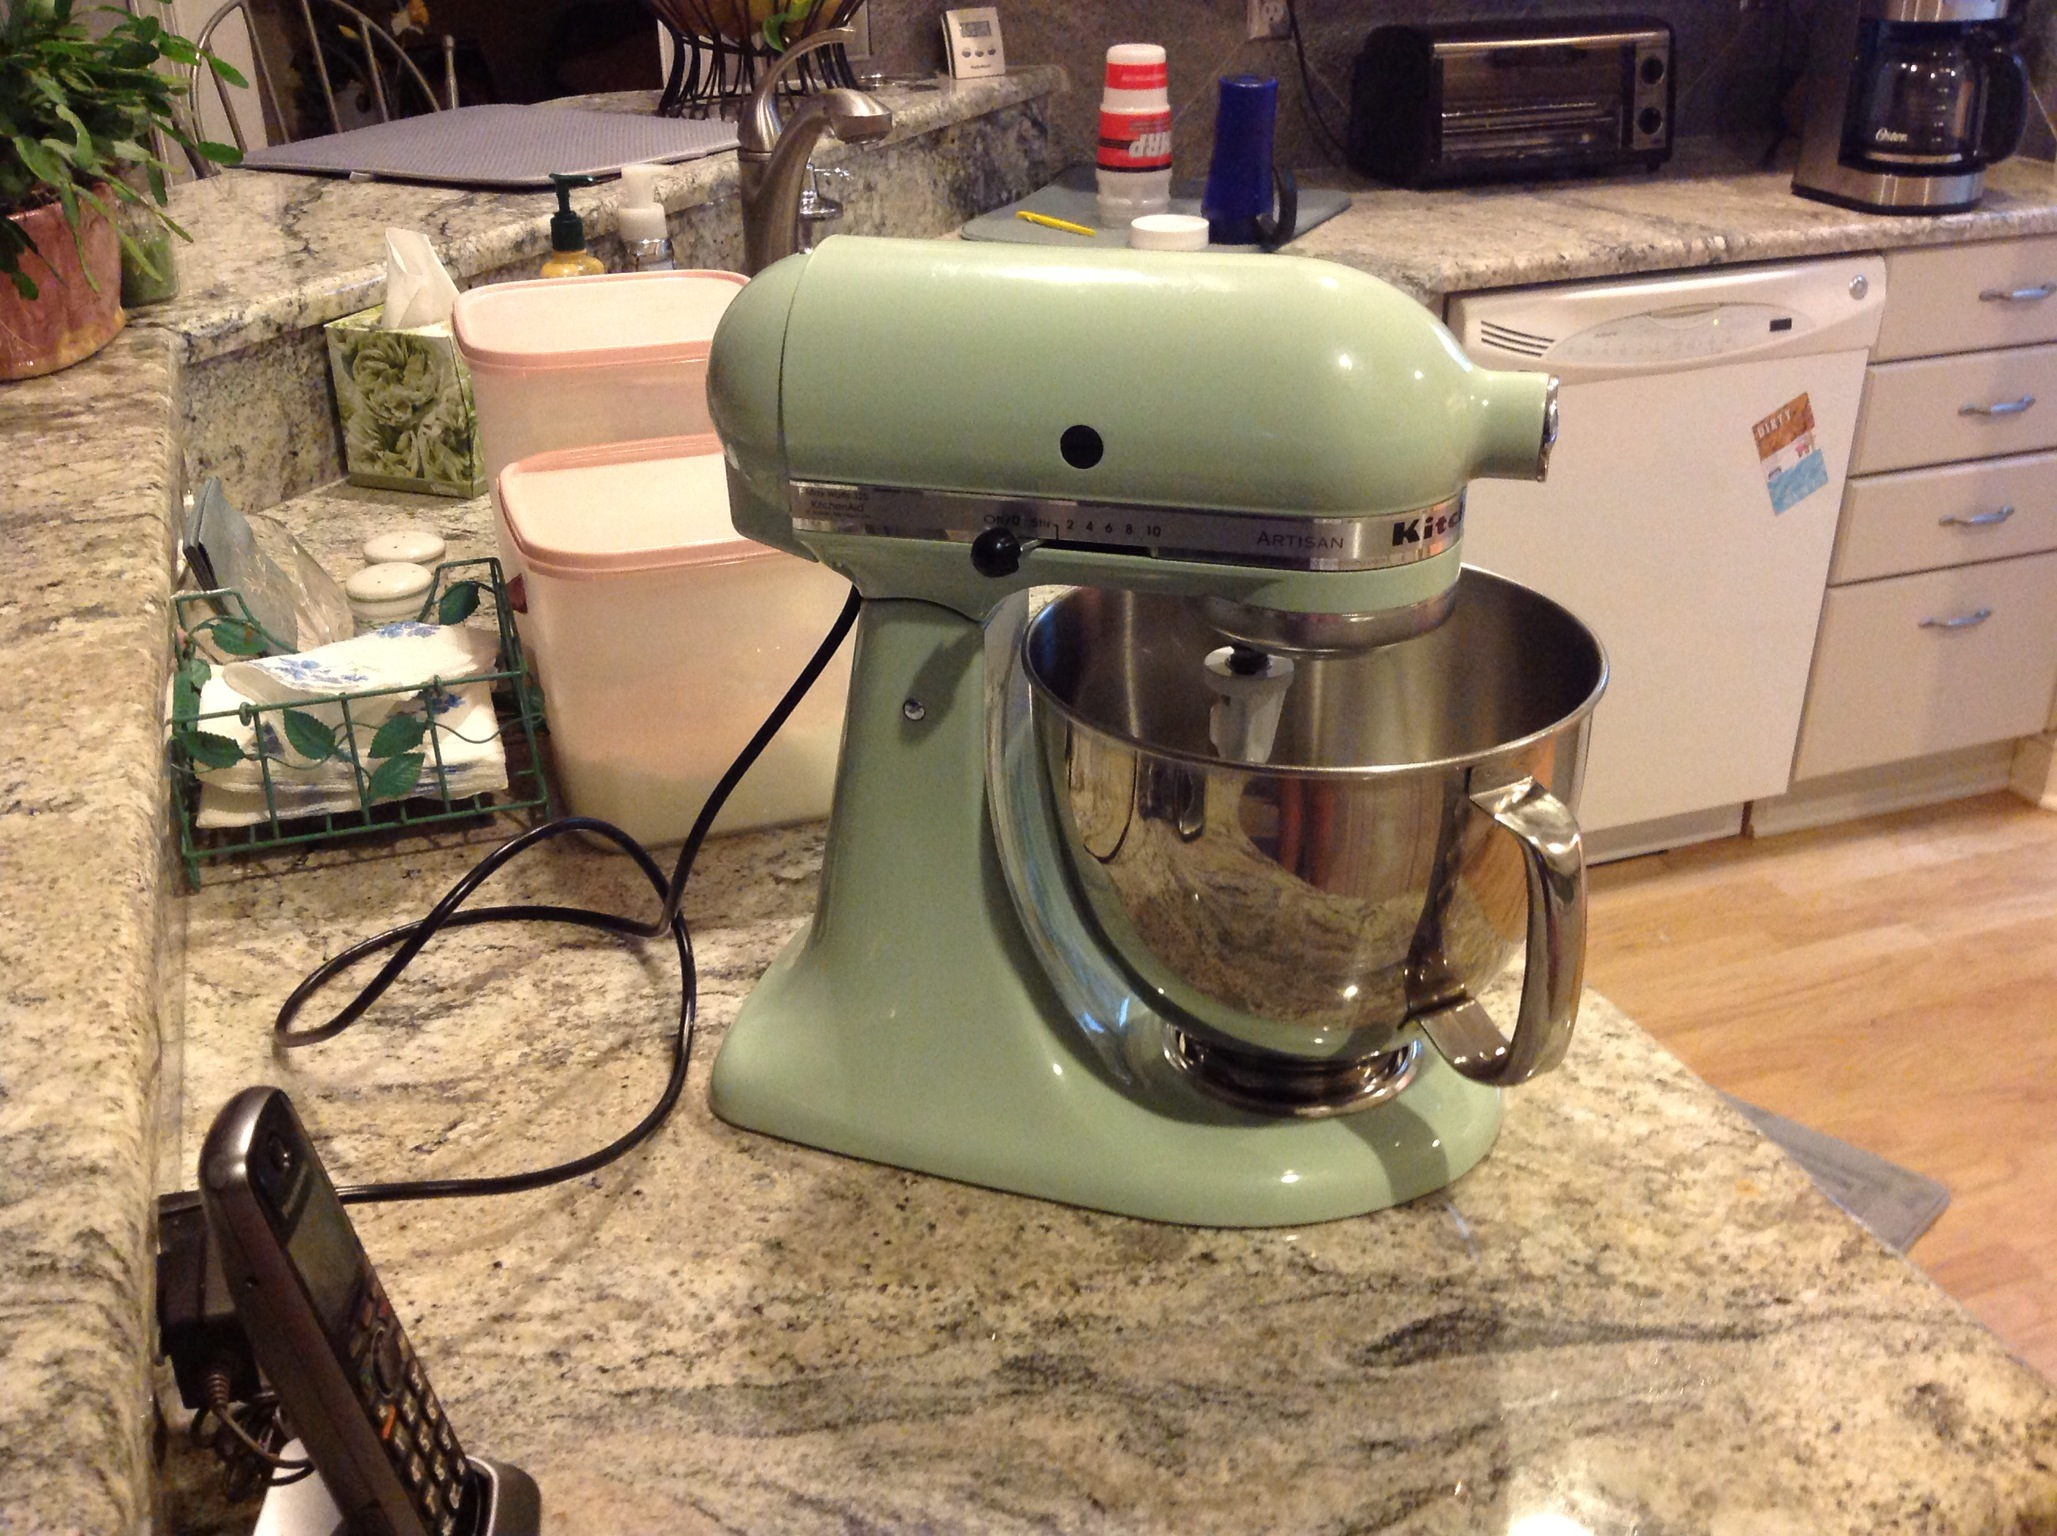 I Havenu0027t Used U201cStach,u201d The Pistachio Colored KitchenAid Mixer, In A While  So Tonight Just Seemed Right. Baking Is Sort Of Therapeutic For Me.